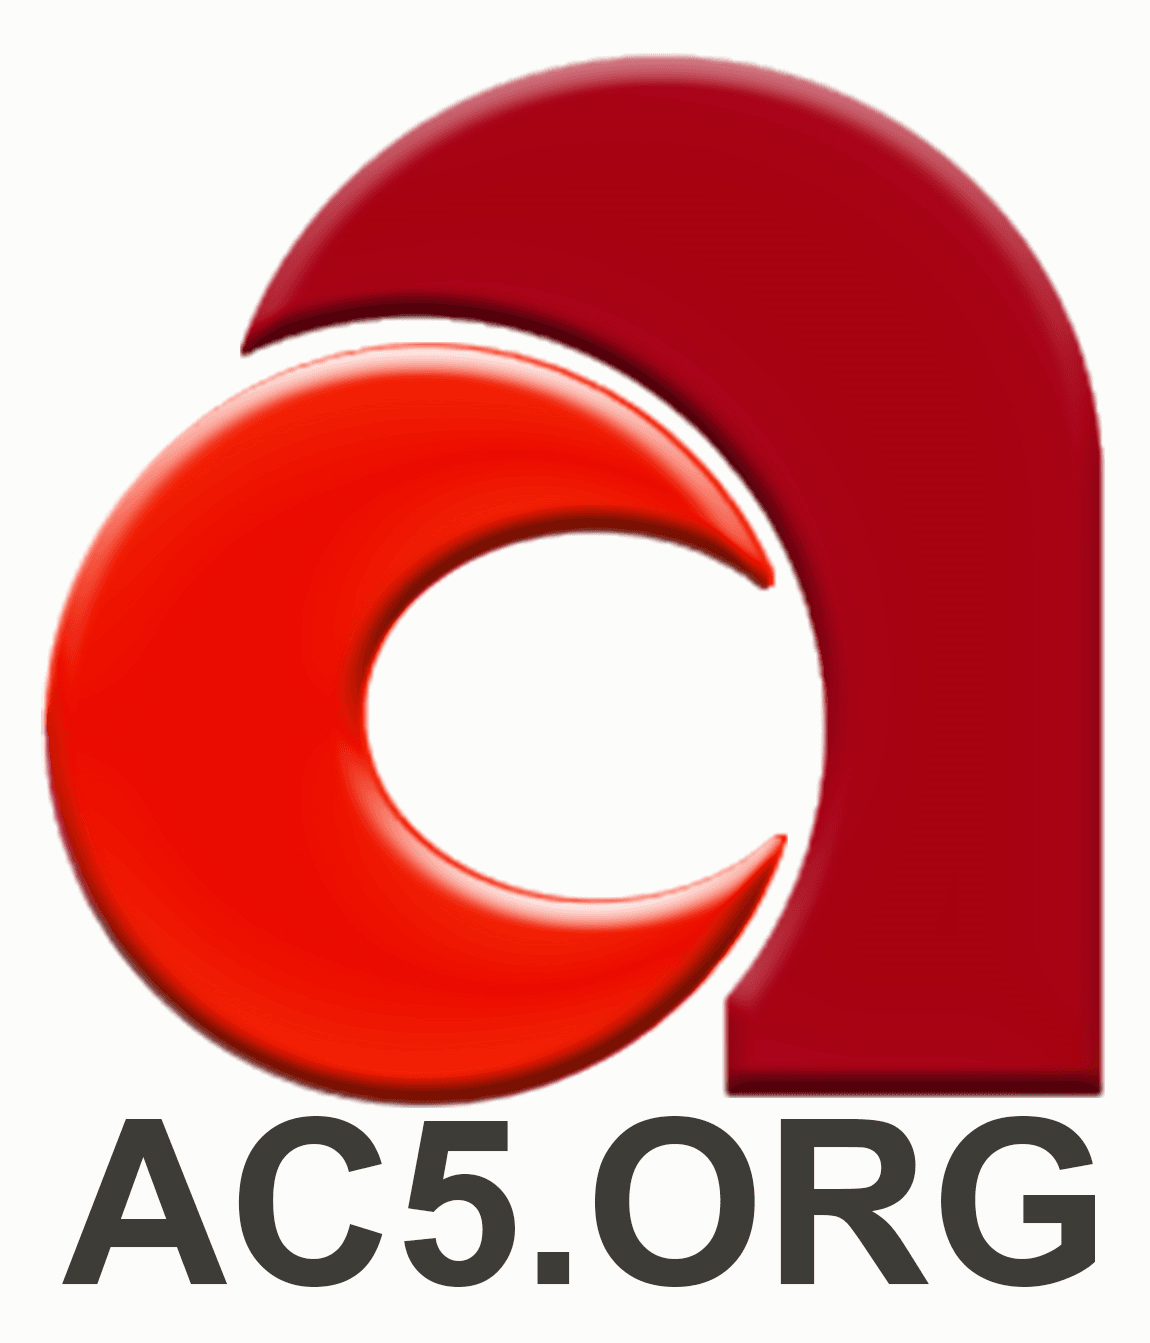 AC5ORG white Background